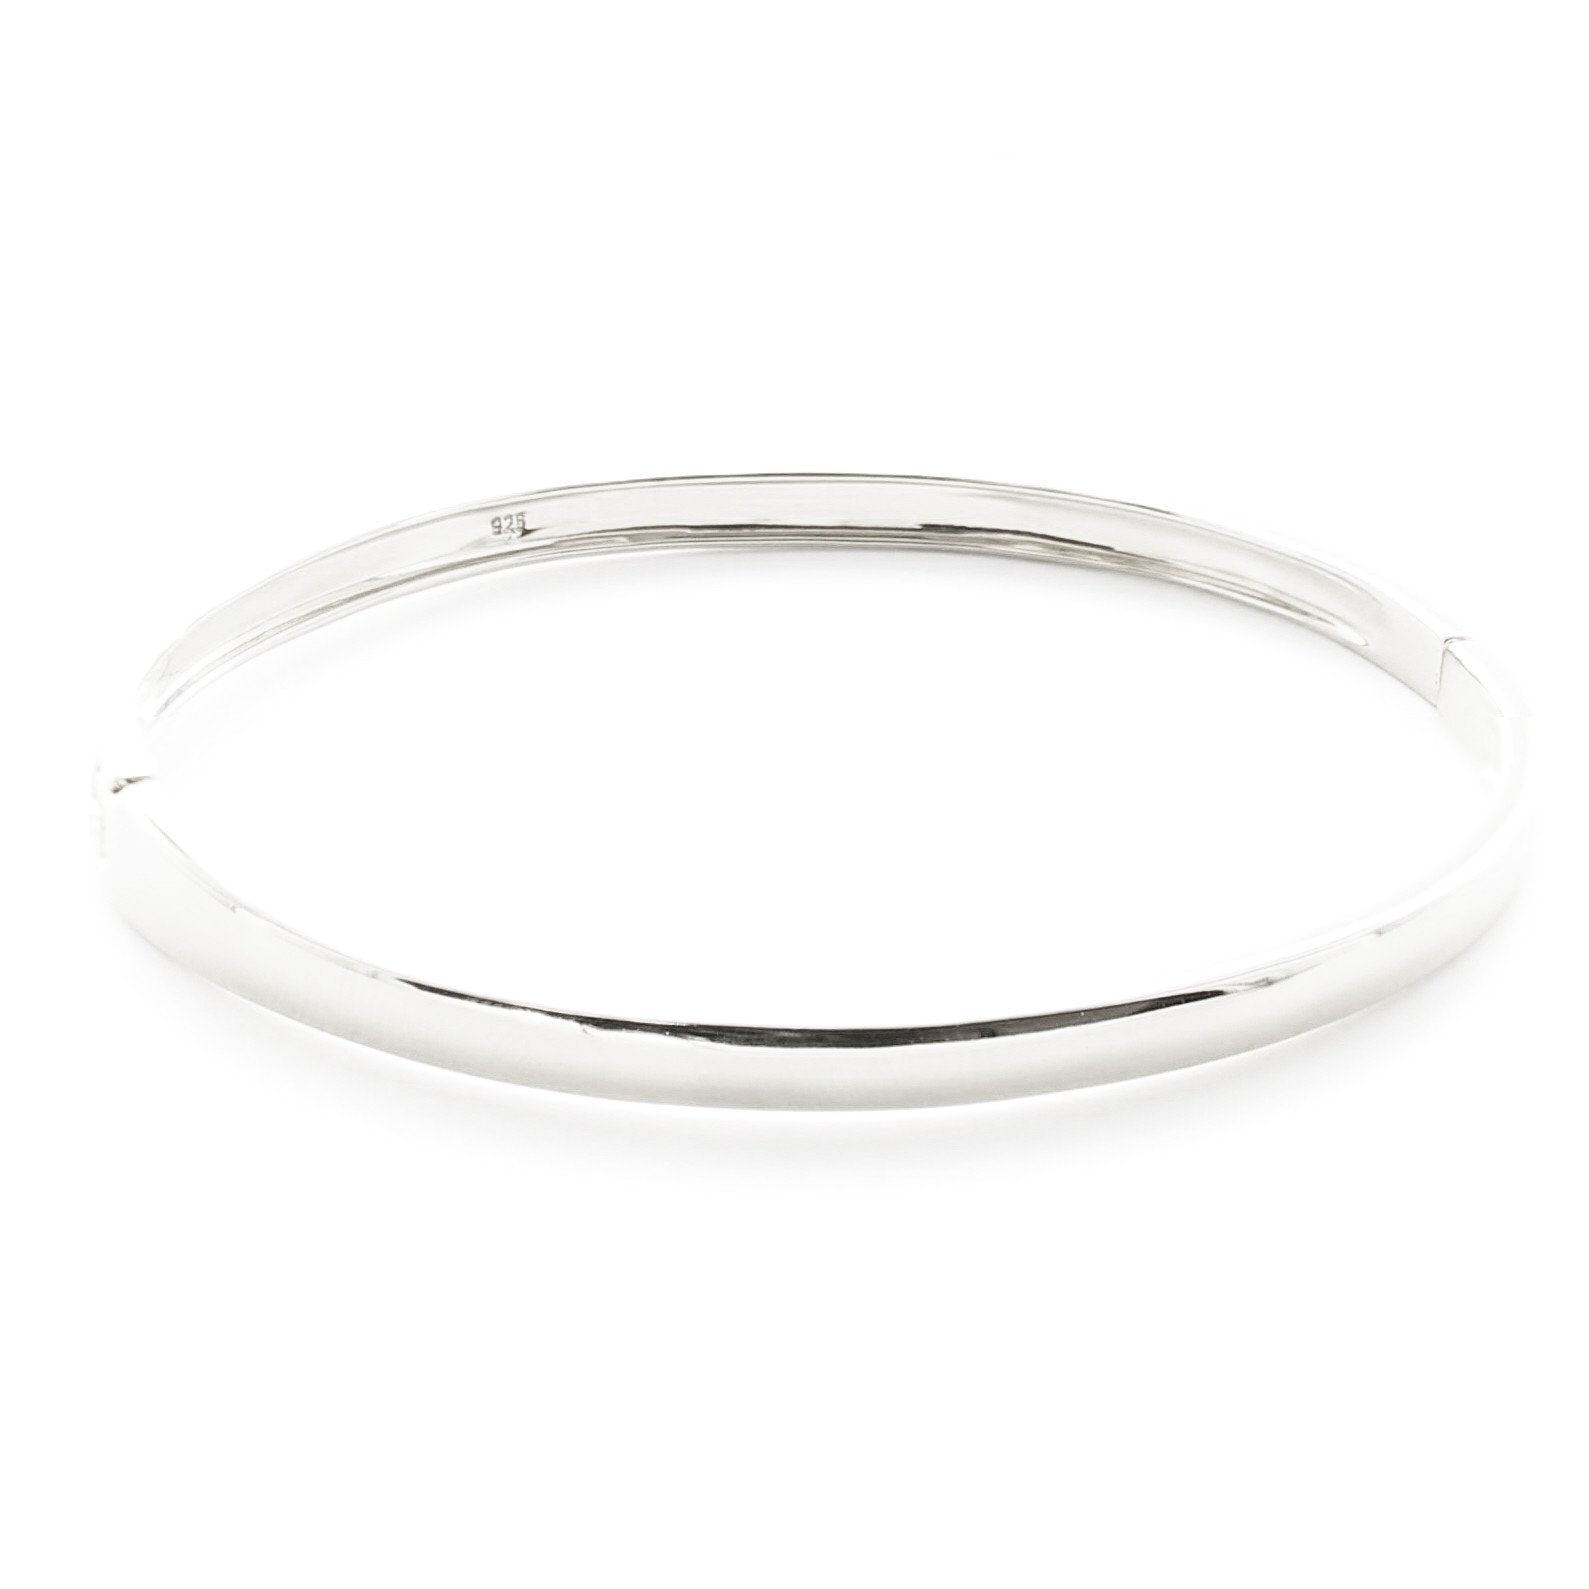 Poise Oval Bangle - Silver - SO PRETTY CARA COTTER